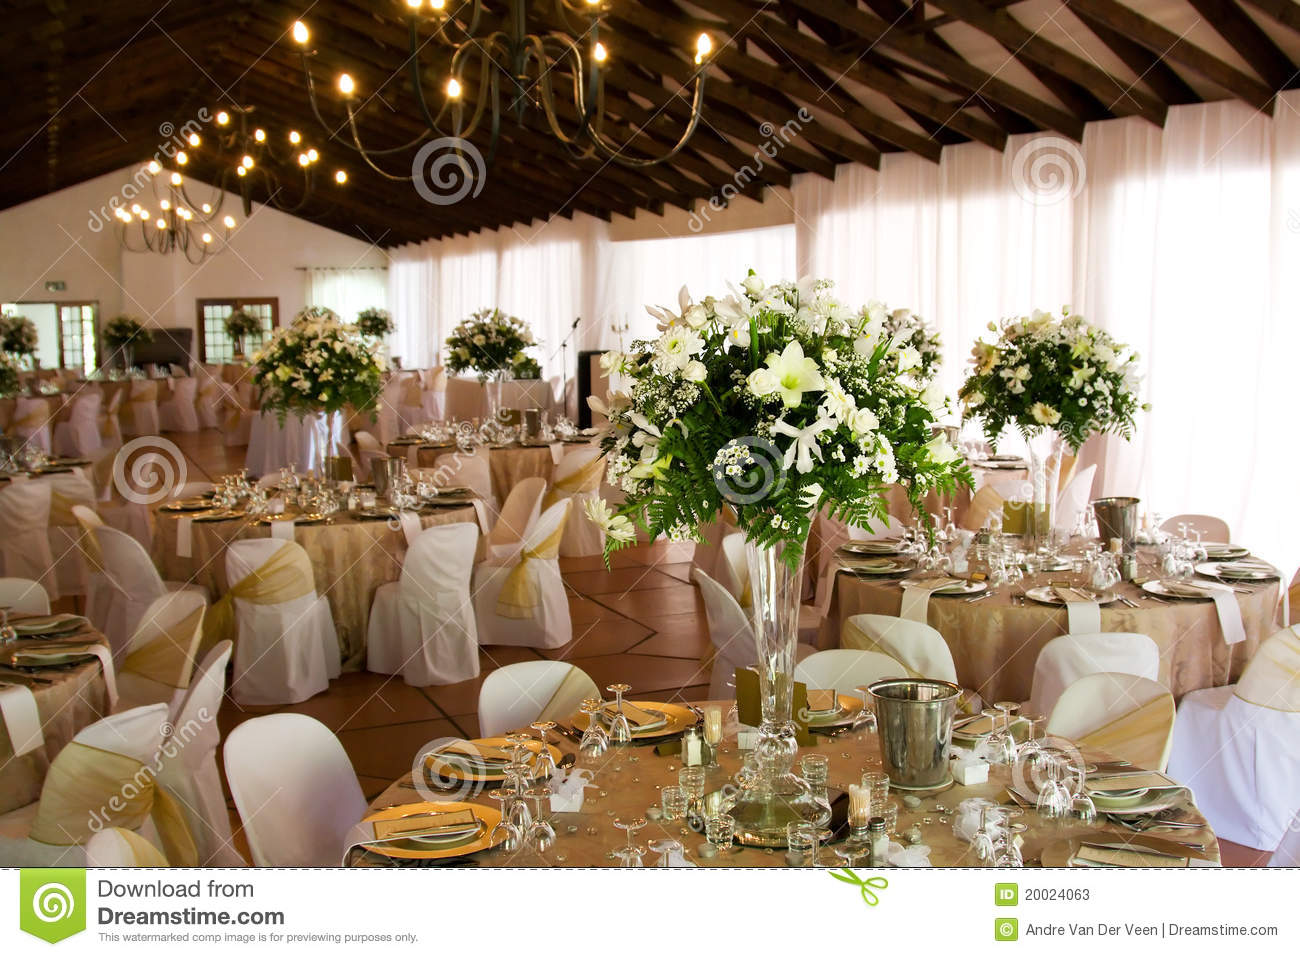 Wedding venue decor romantic decoration reception venue with decor indoors wedding reception venue with decor stock photos image junglespirit